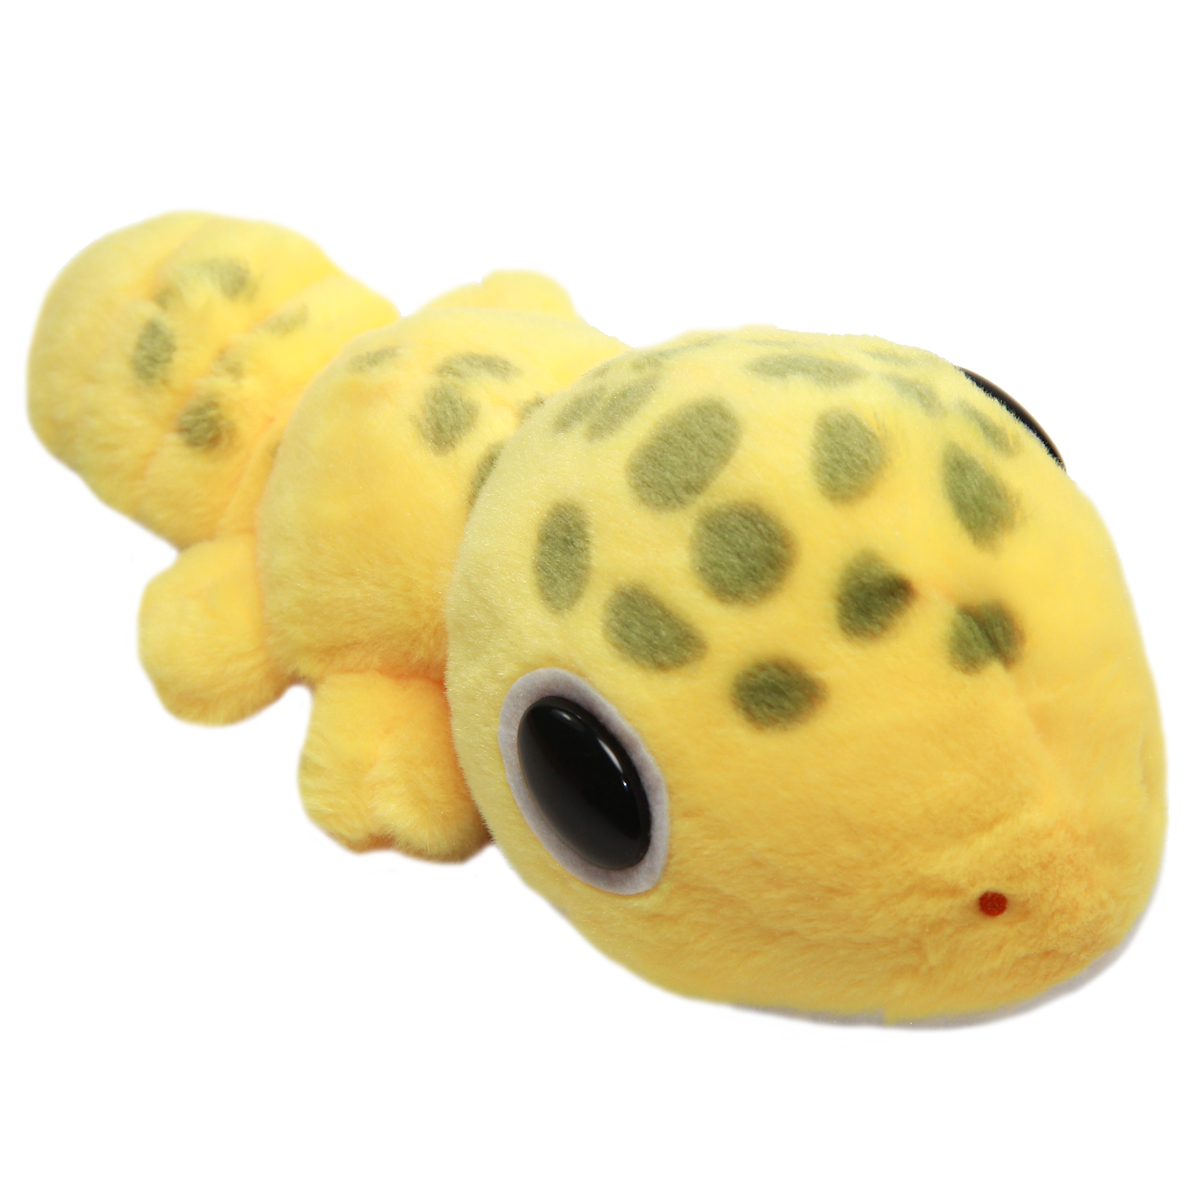 Leopard Gecko Plushie Super Soft Squishy Stuffed Animal Toy Yellow Size 8 Inches